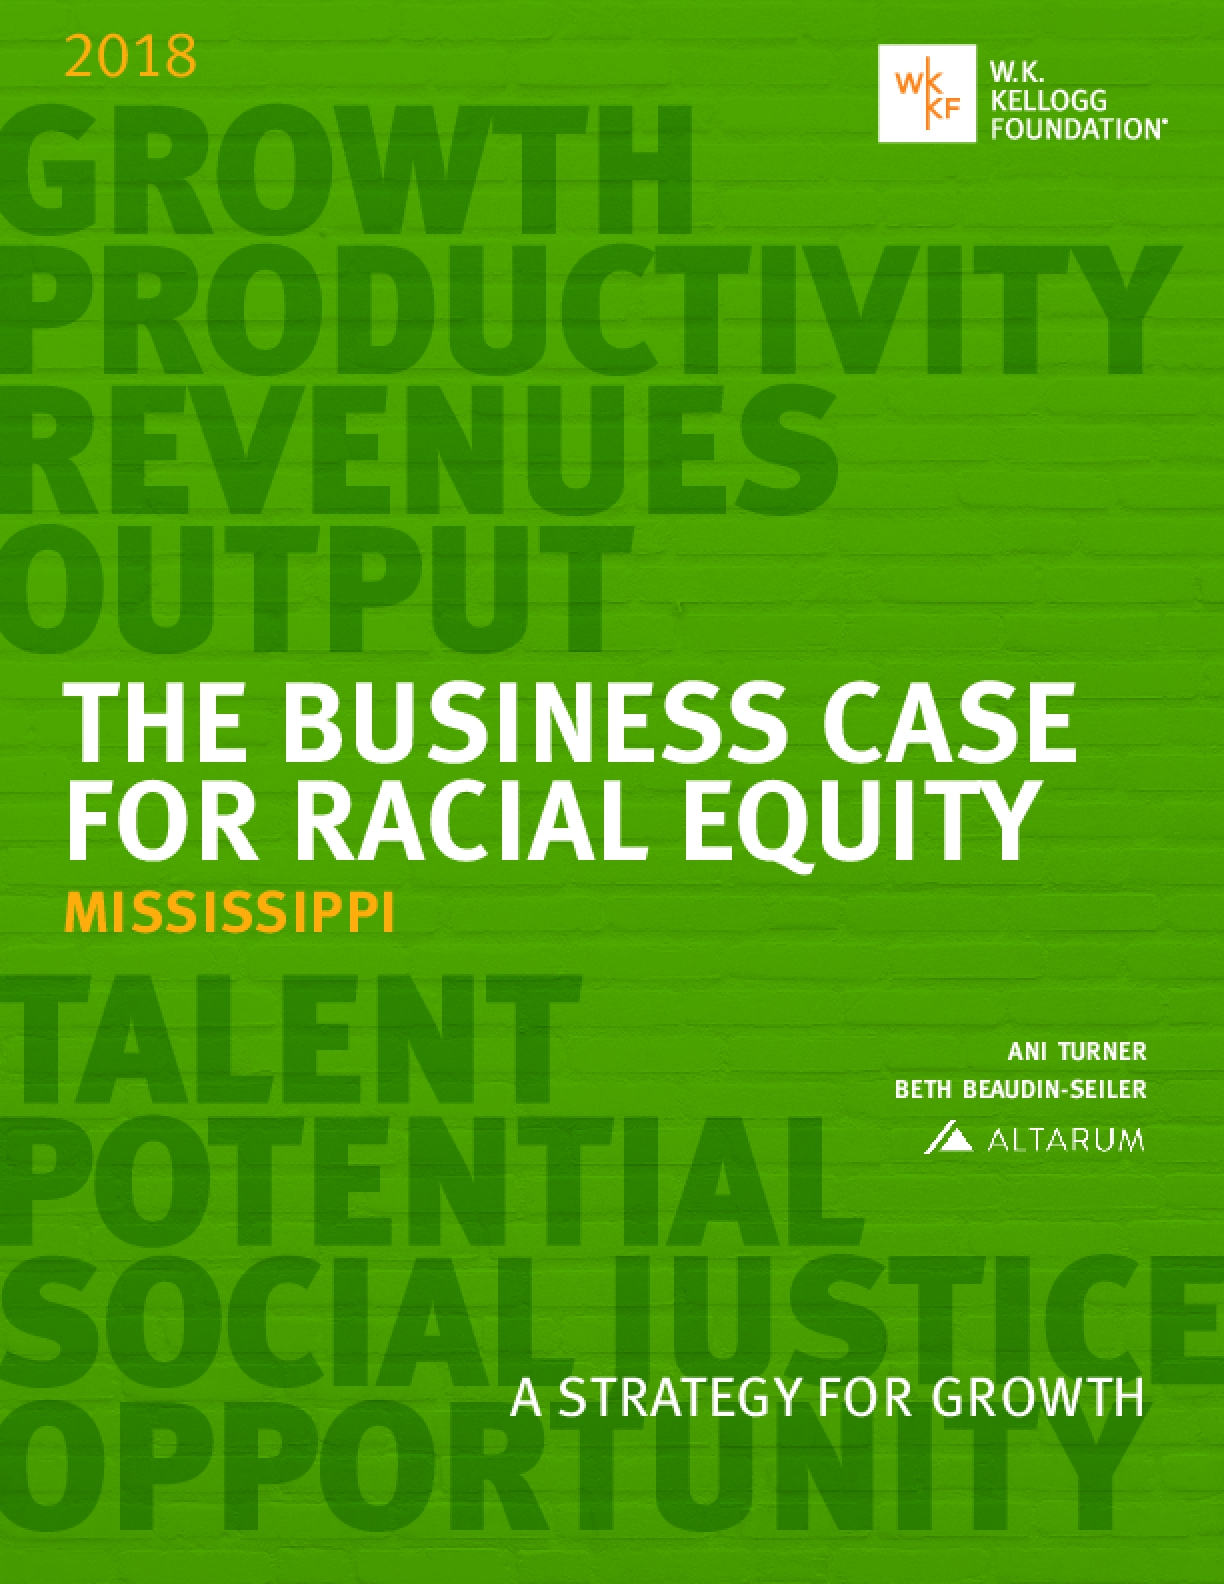 The Business Case for Racial Equity: Mississippi